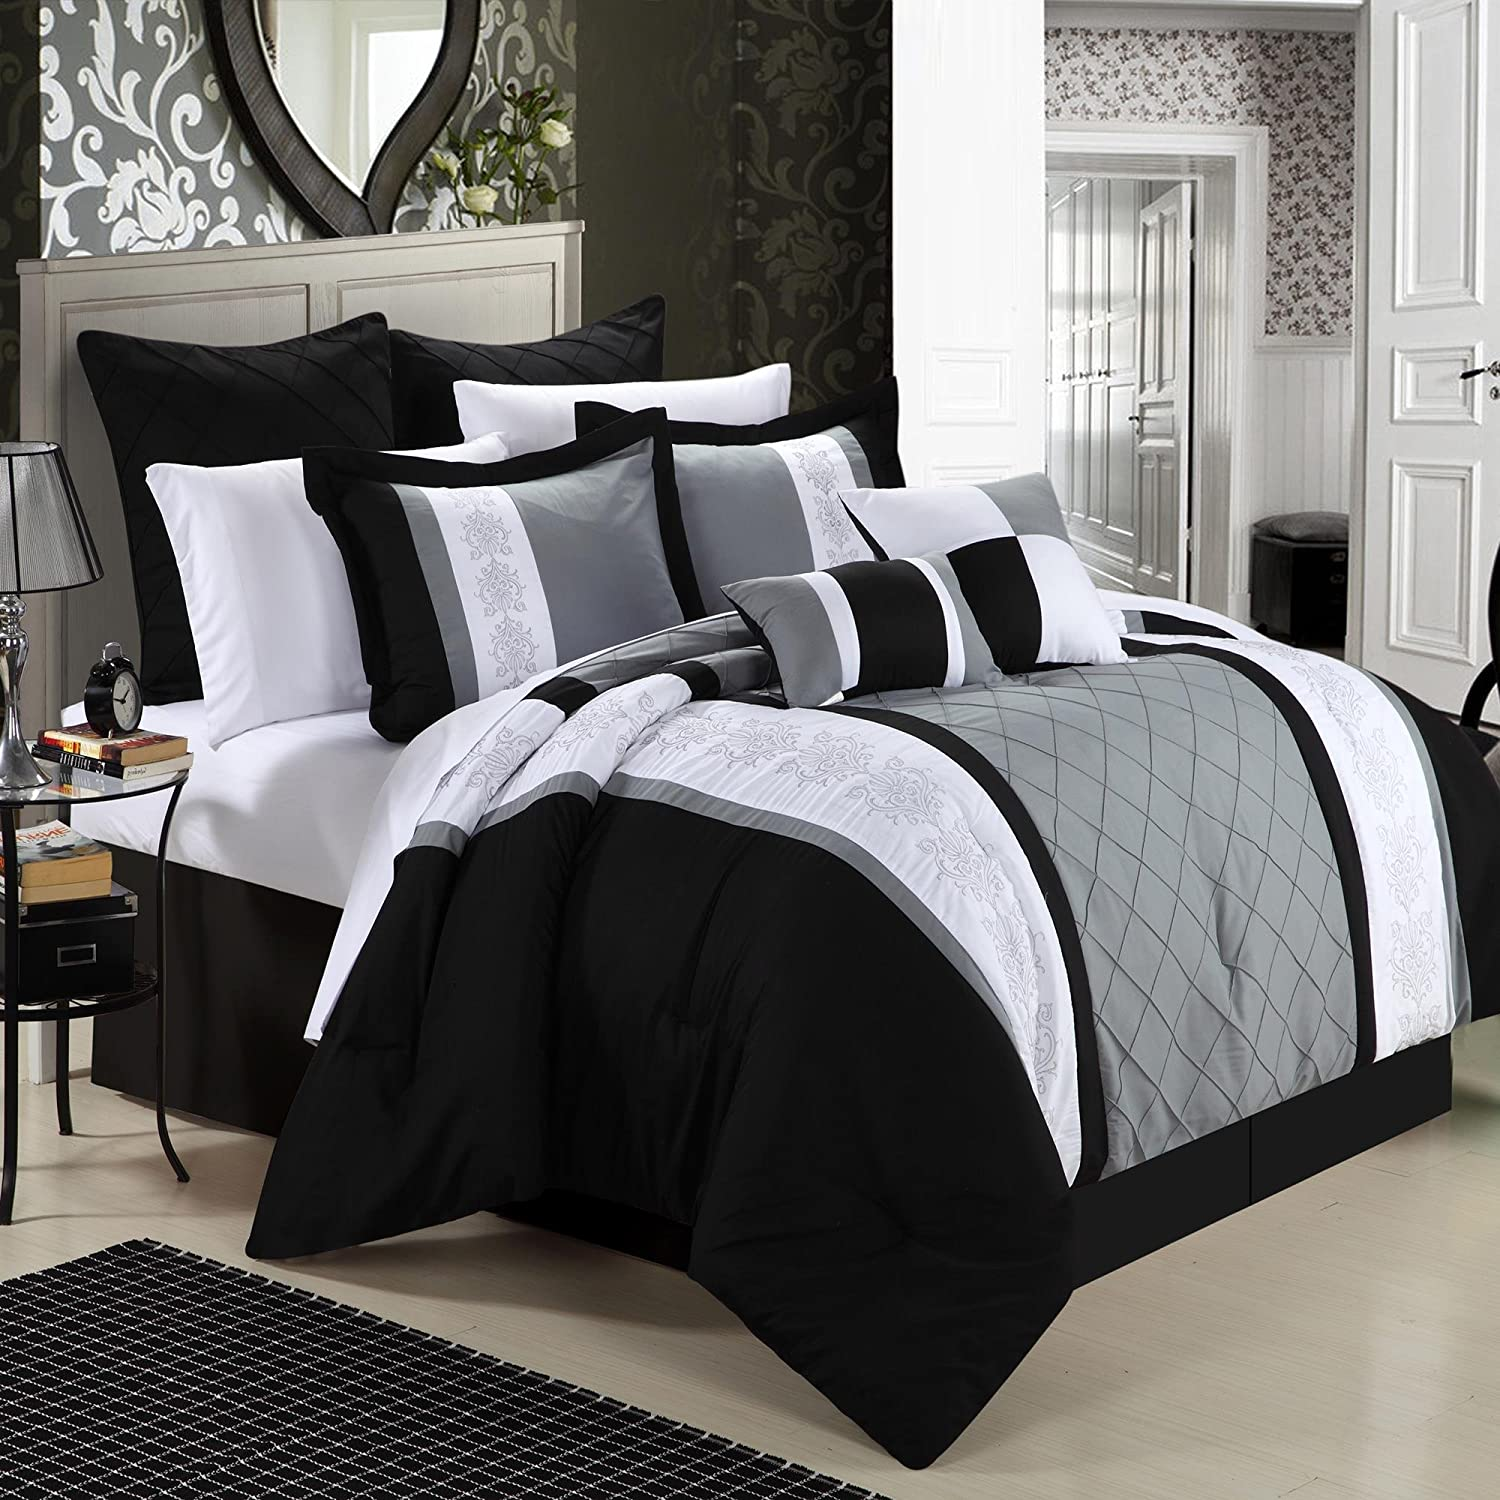 Black White and Gray Comforter Sets 1500 x 1500